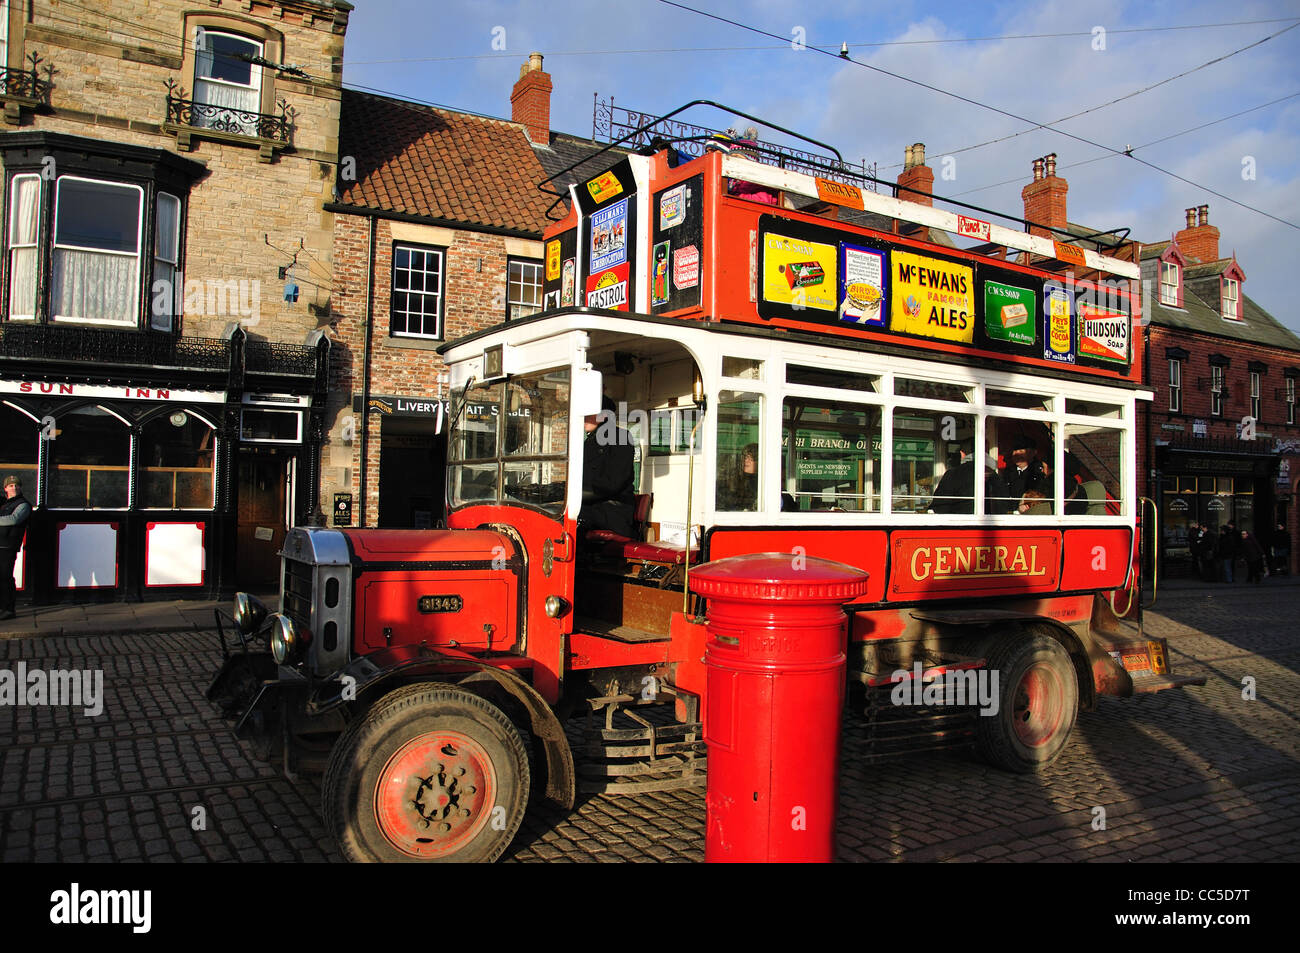 Replica bus in Edwardian Town, Beamish, The North of England Open Air Museum, nr Stanley, County Durham, England, - Stock Image